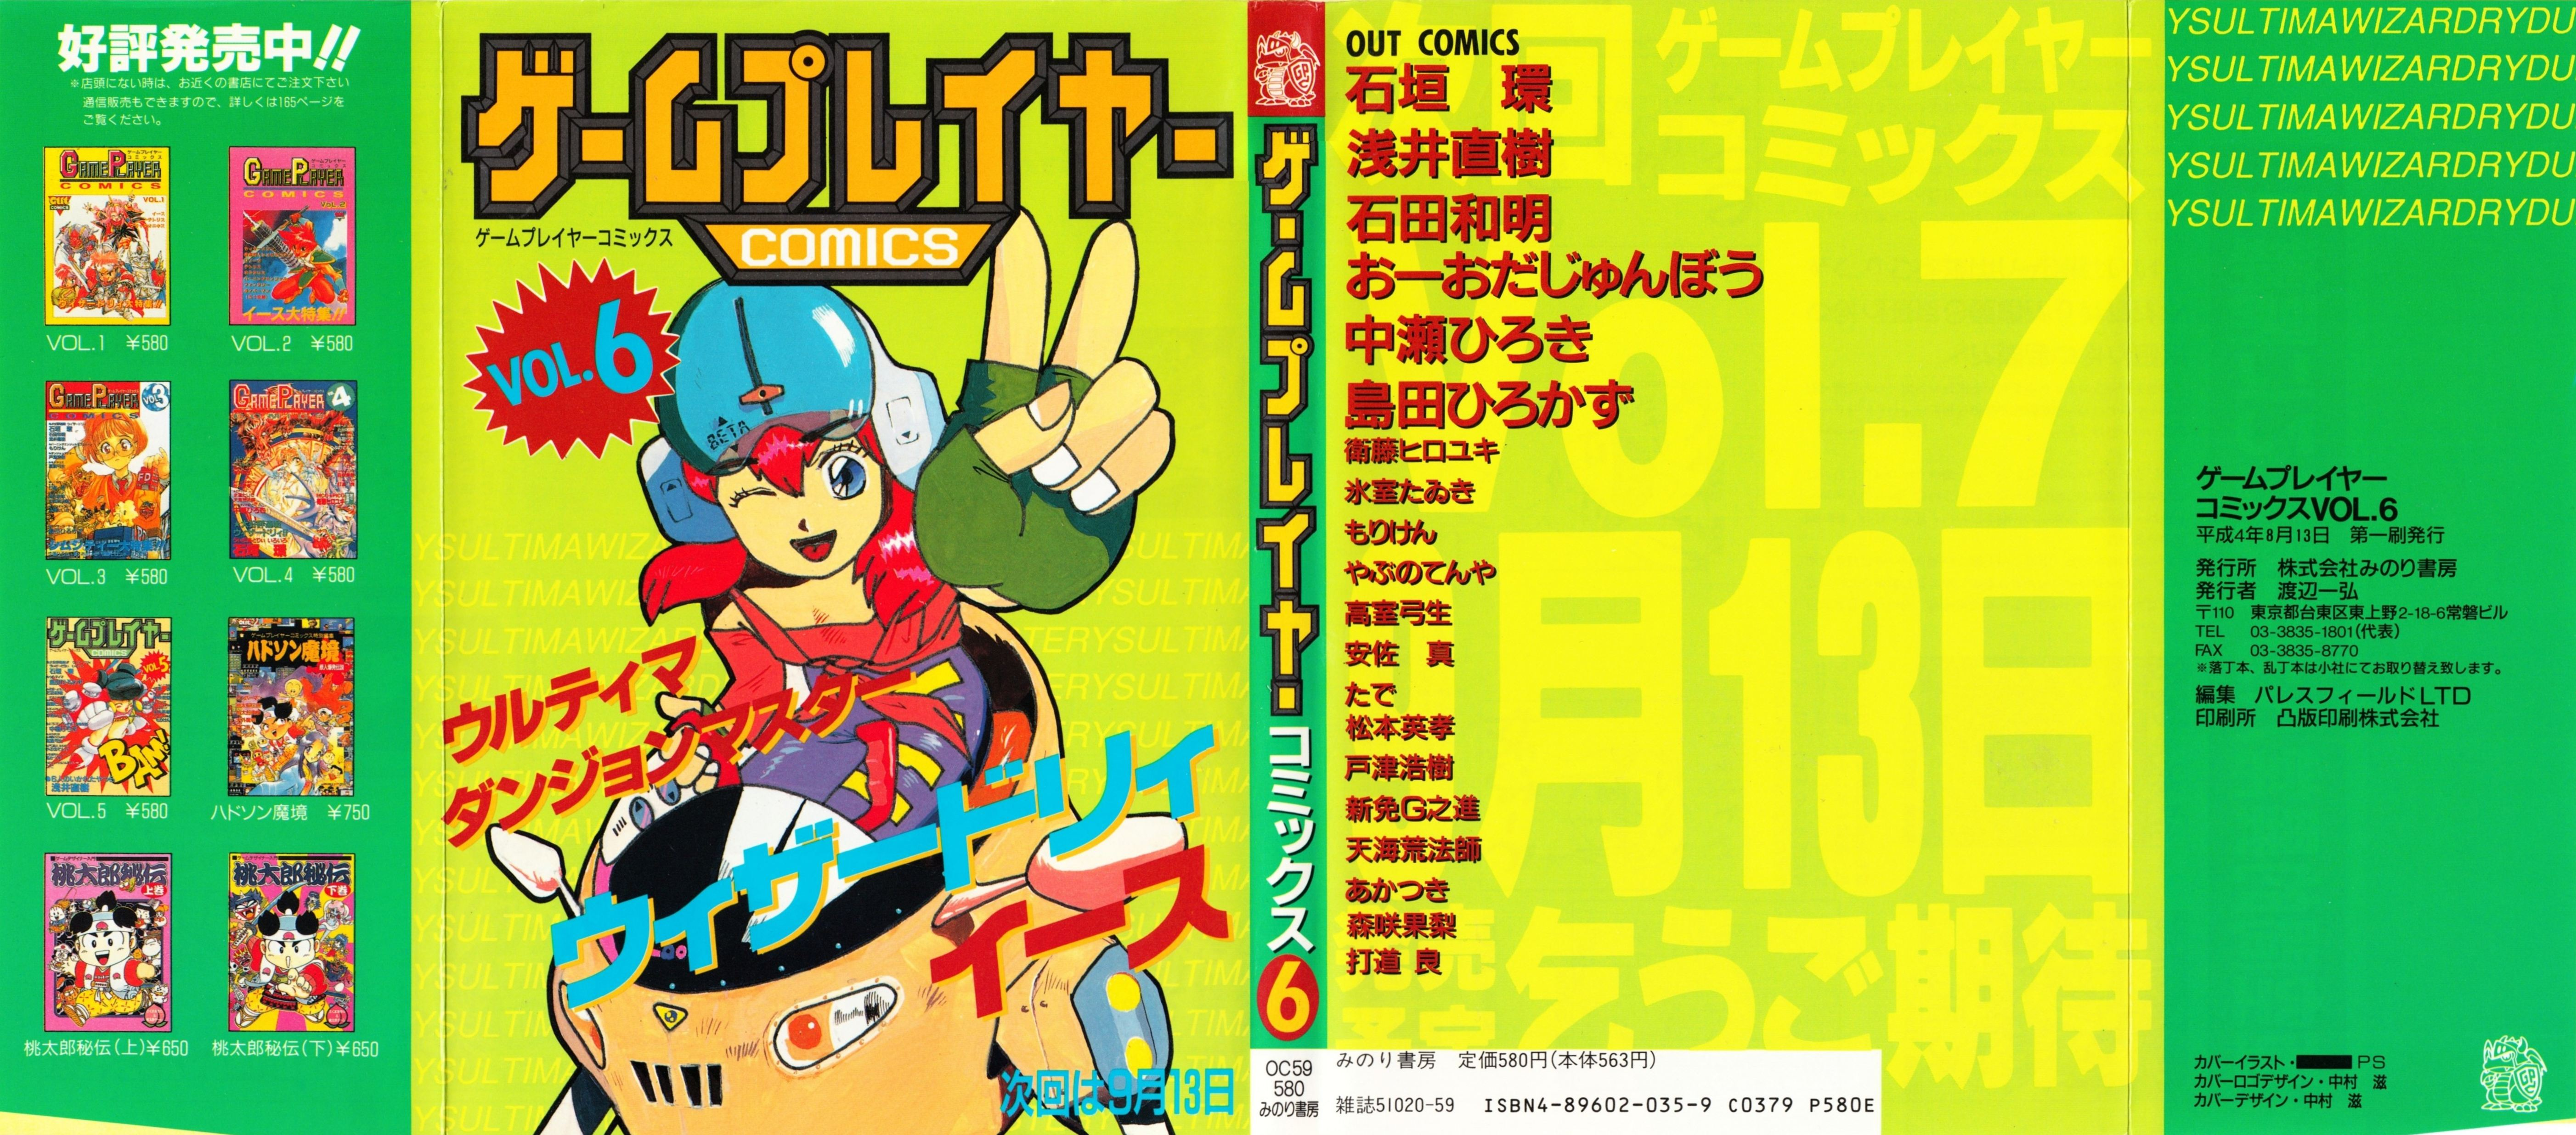 Comic - Game Player Comics Volume 6 - JP - Dust Jacket - Front - Scan